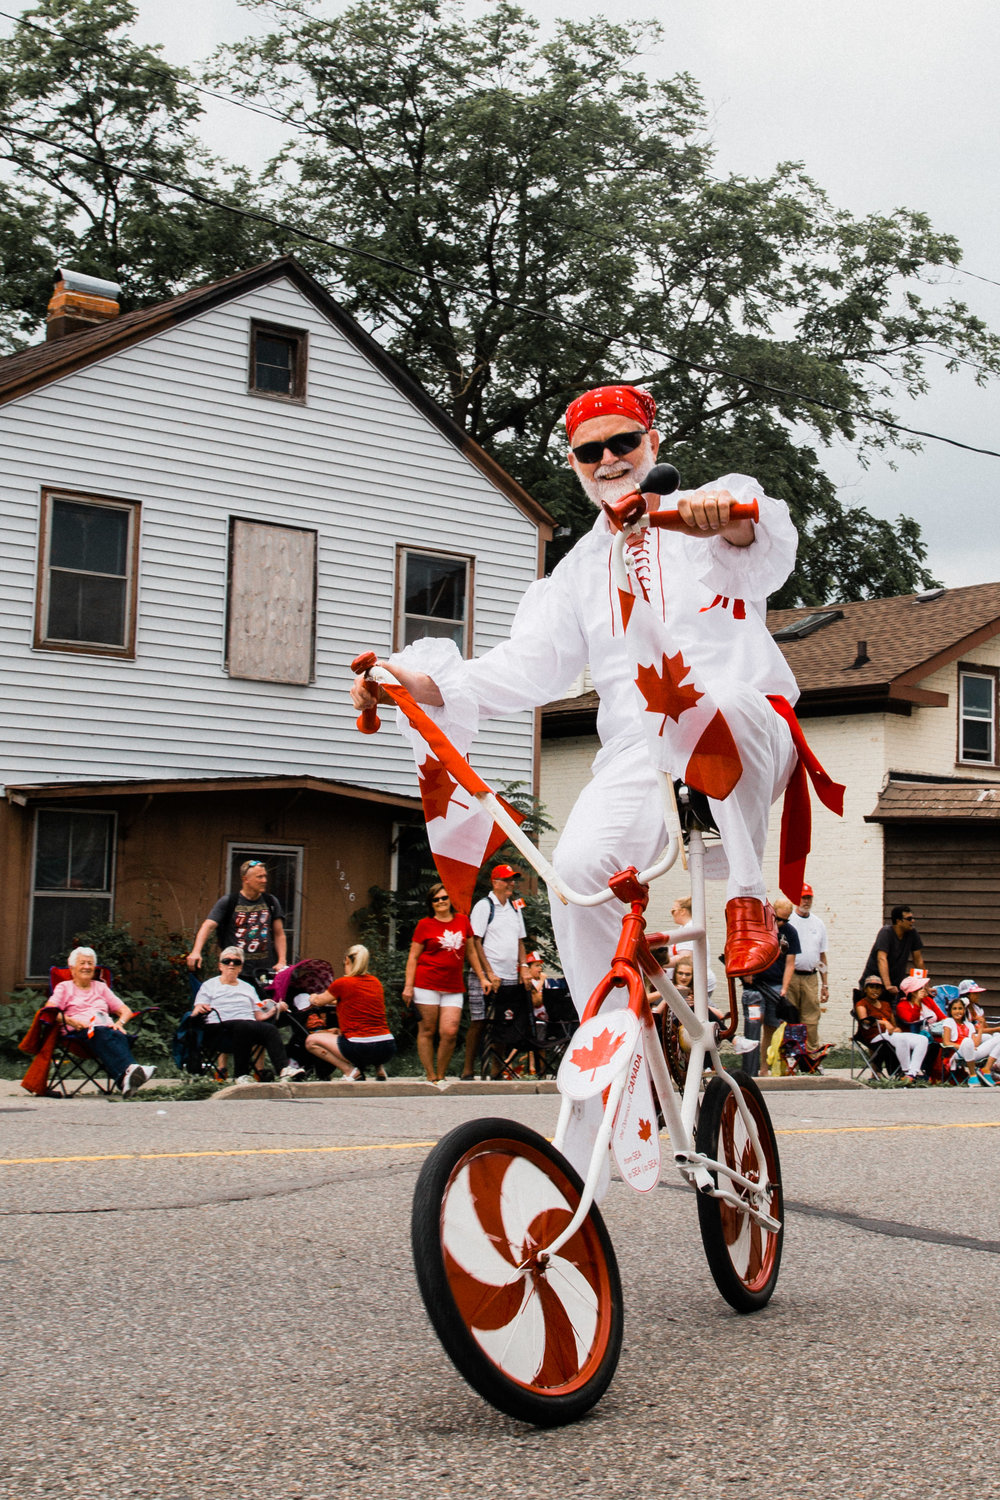 Entertainer rides a unique bicycle in Canada's 150th celebration parade in Cambridge.